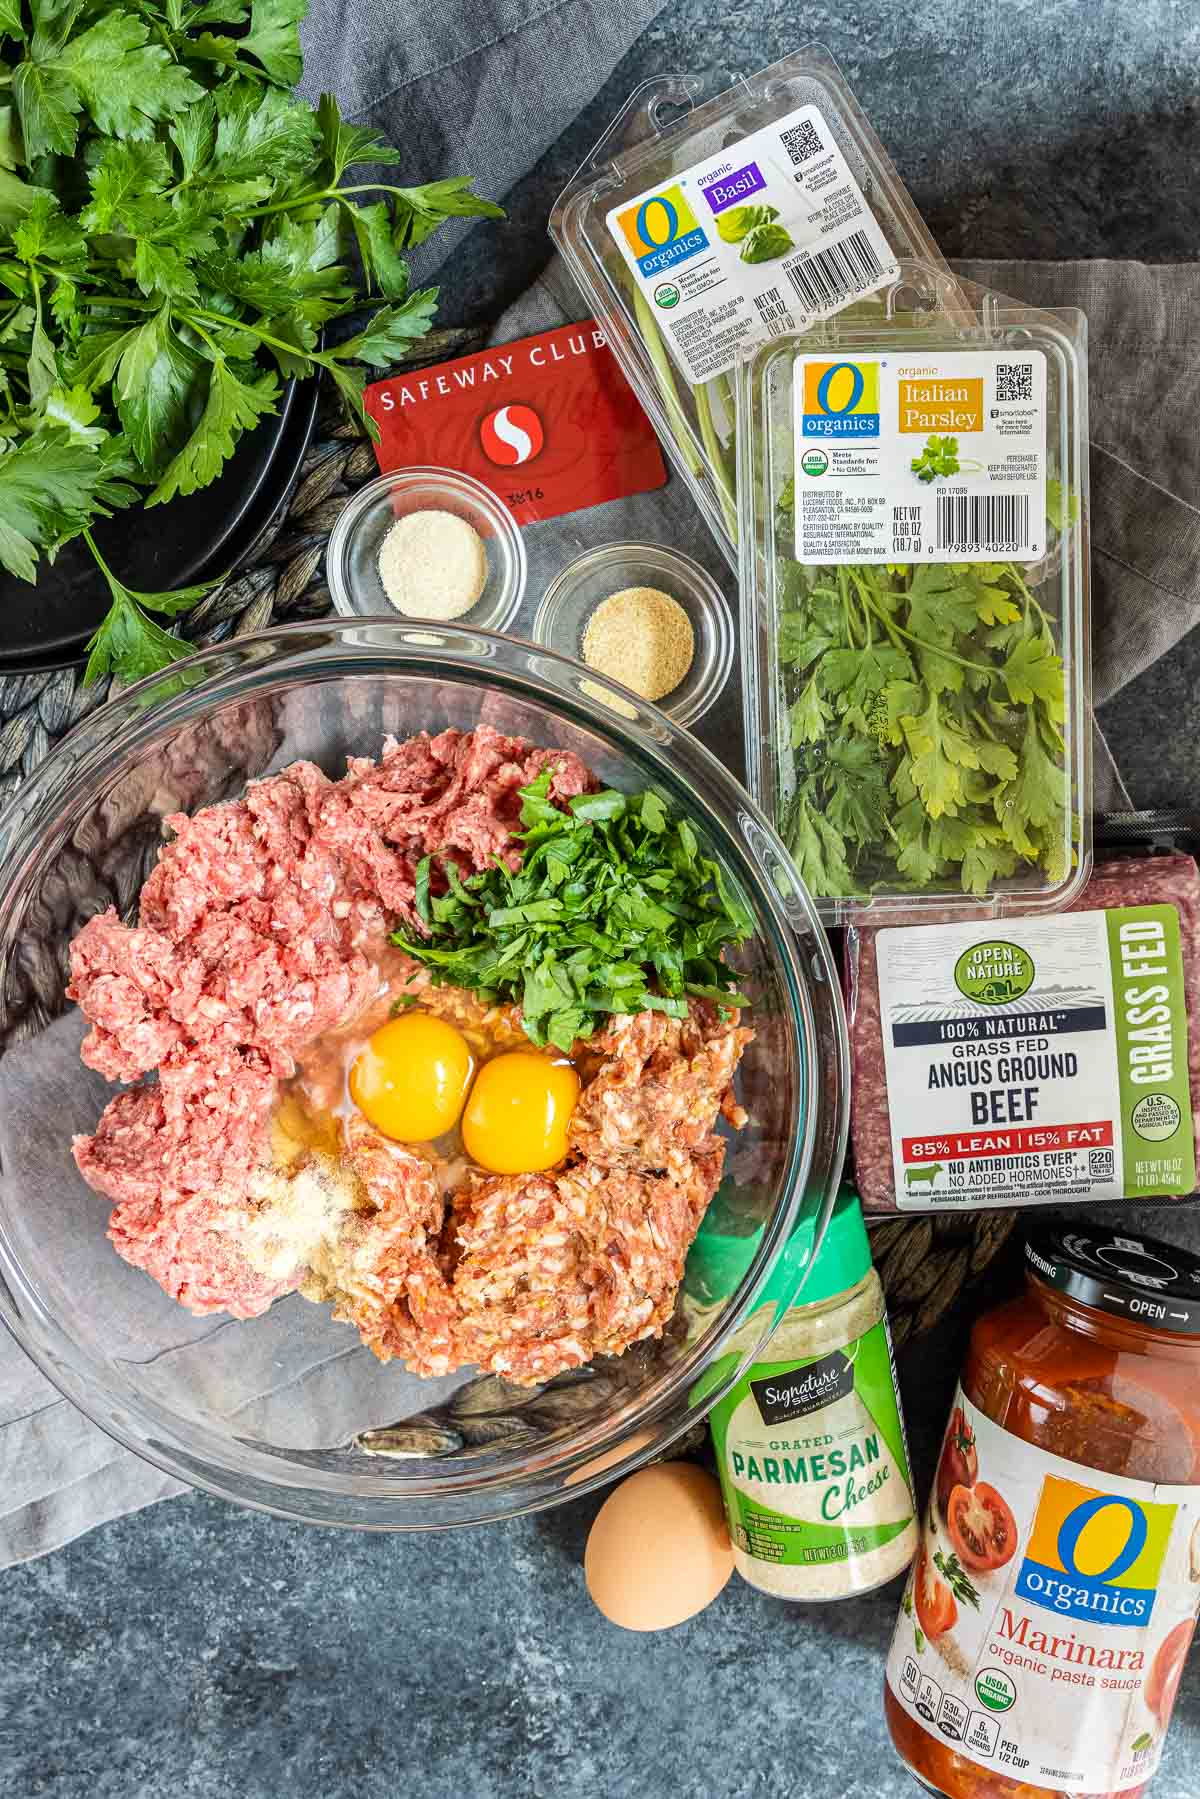 ingredients for Instant Pot Meatballs from Safeway